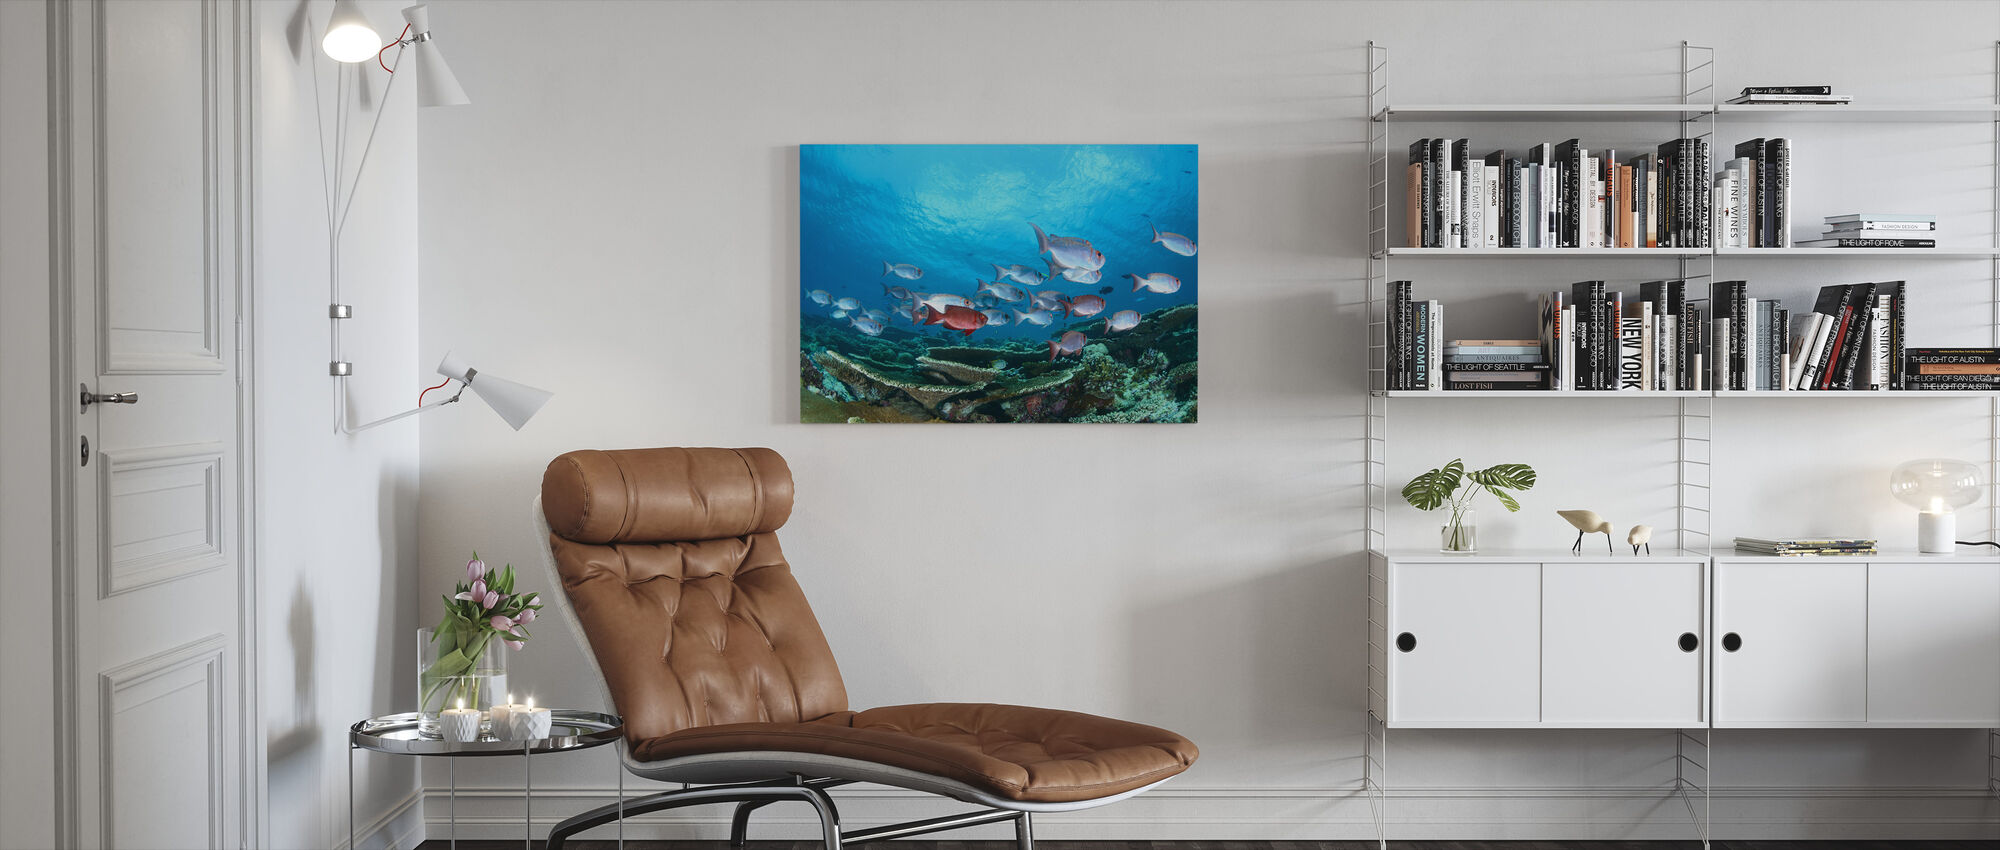 Enchanthed Gardens - Canvas print - Living Room